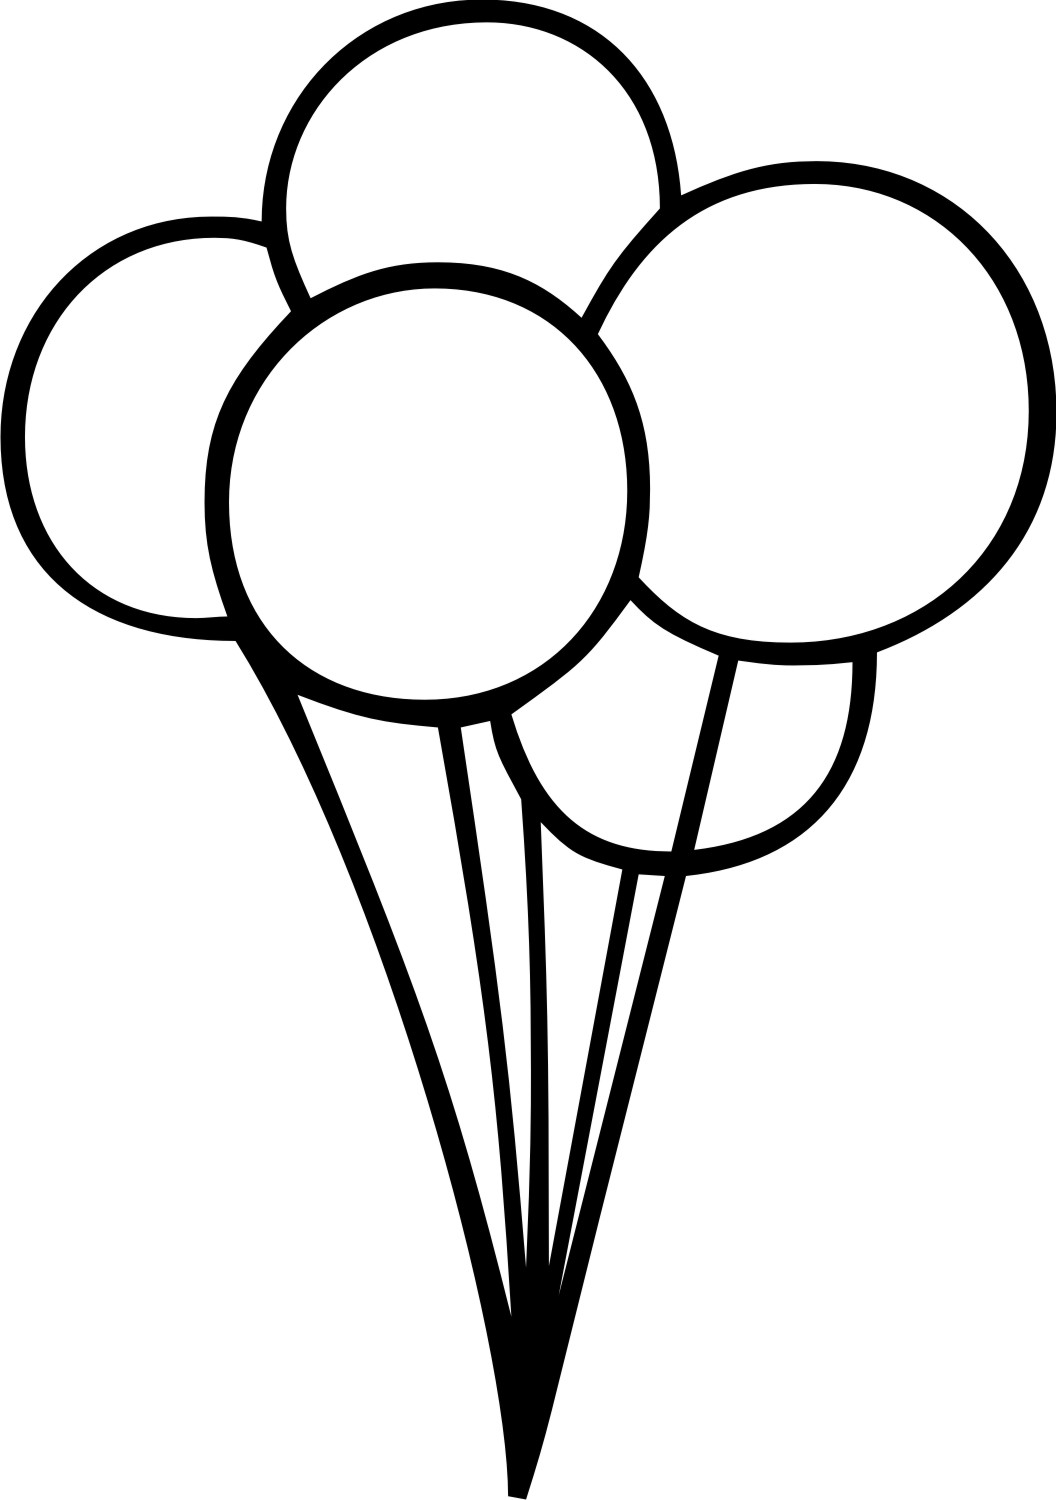 Balloon black and white clipart